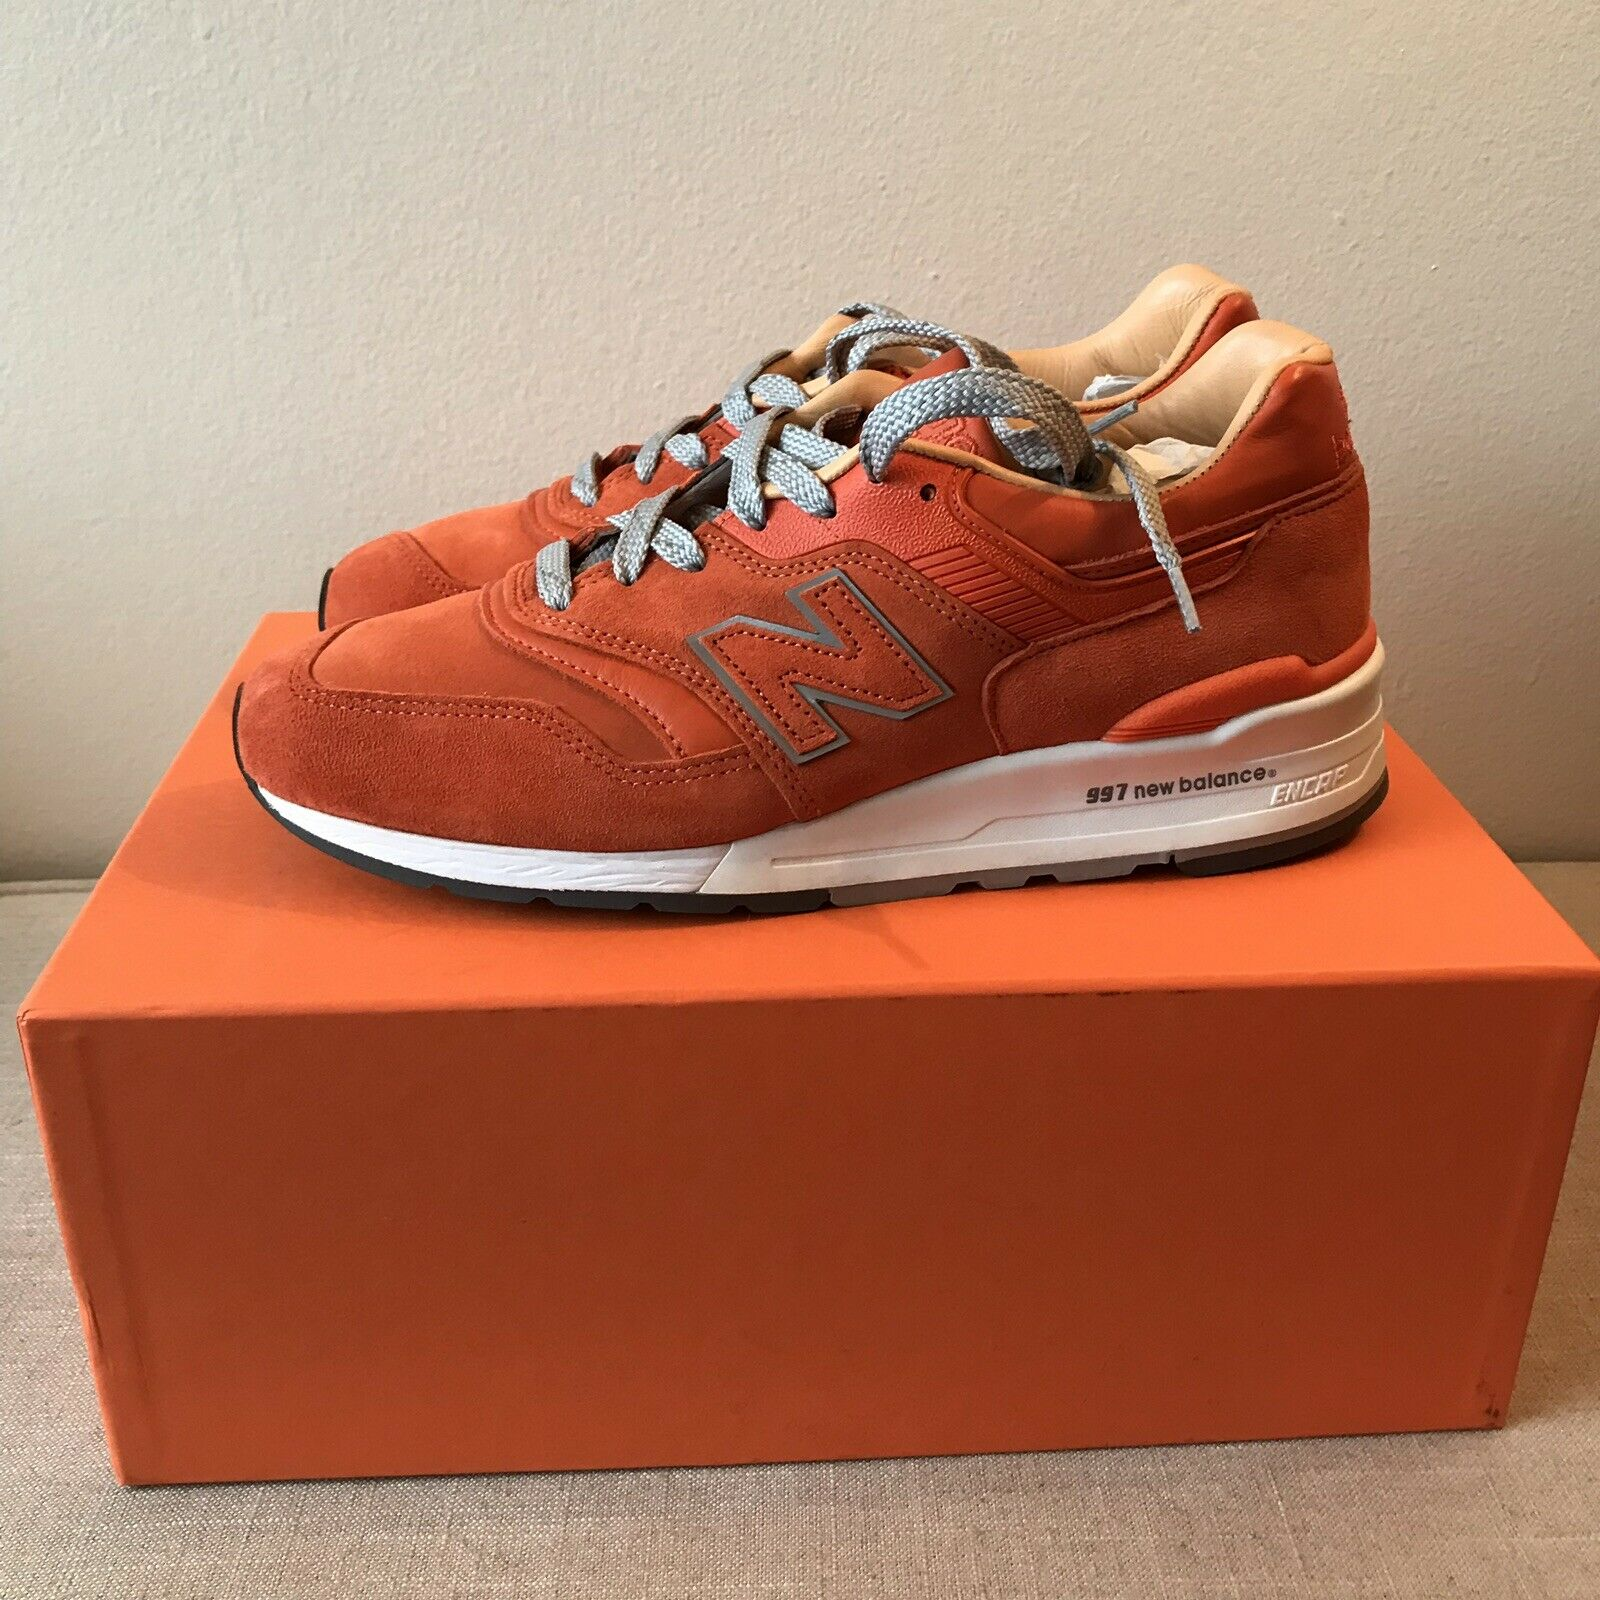 New Balance x Concepts 997 Luxury Goods arancia VNDS VNDS VNDS 10 Kith 1500 998 990 bd0bed